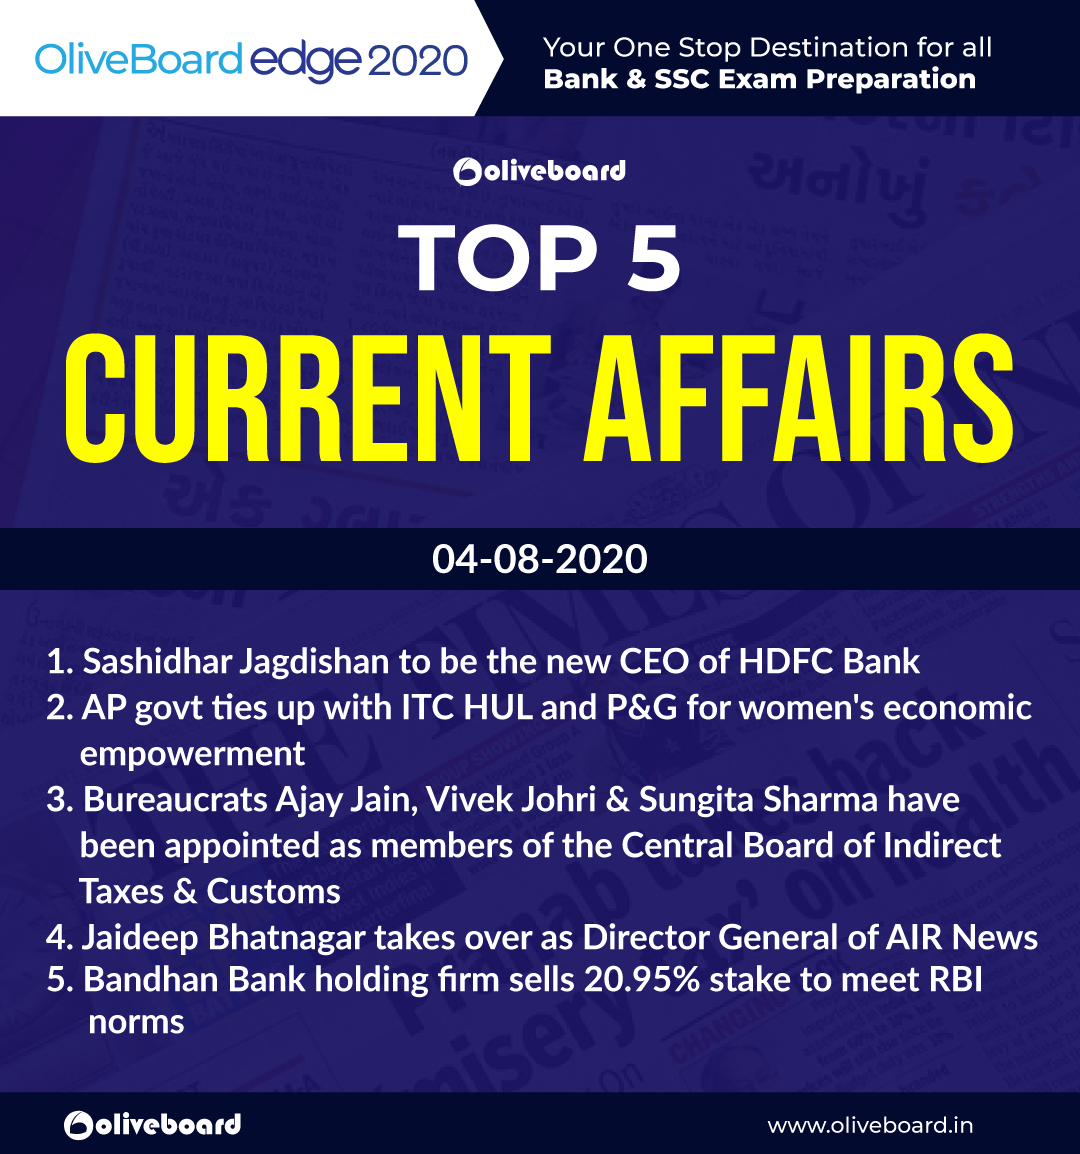 #DailyGK Top 5 Headlines of the Day! Attempt free quizzes every day: http://bit.ly/2RmPyq4  Take Free Mock Tests here: http://bit.ly/2OMlDlE  #CurrentAffairs #GK #India #Oliveboardpic.twitter.com/HgwliUMQhf